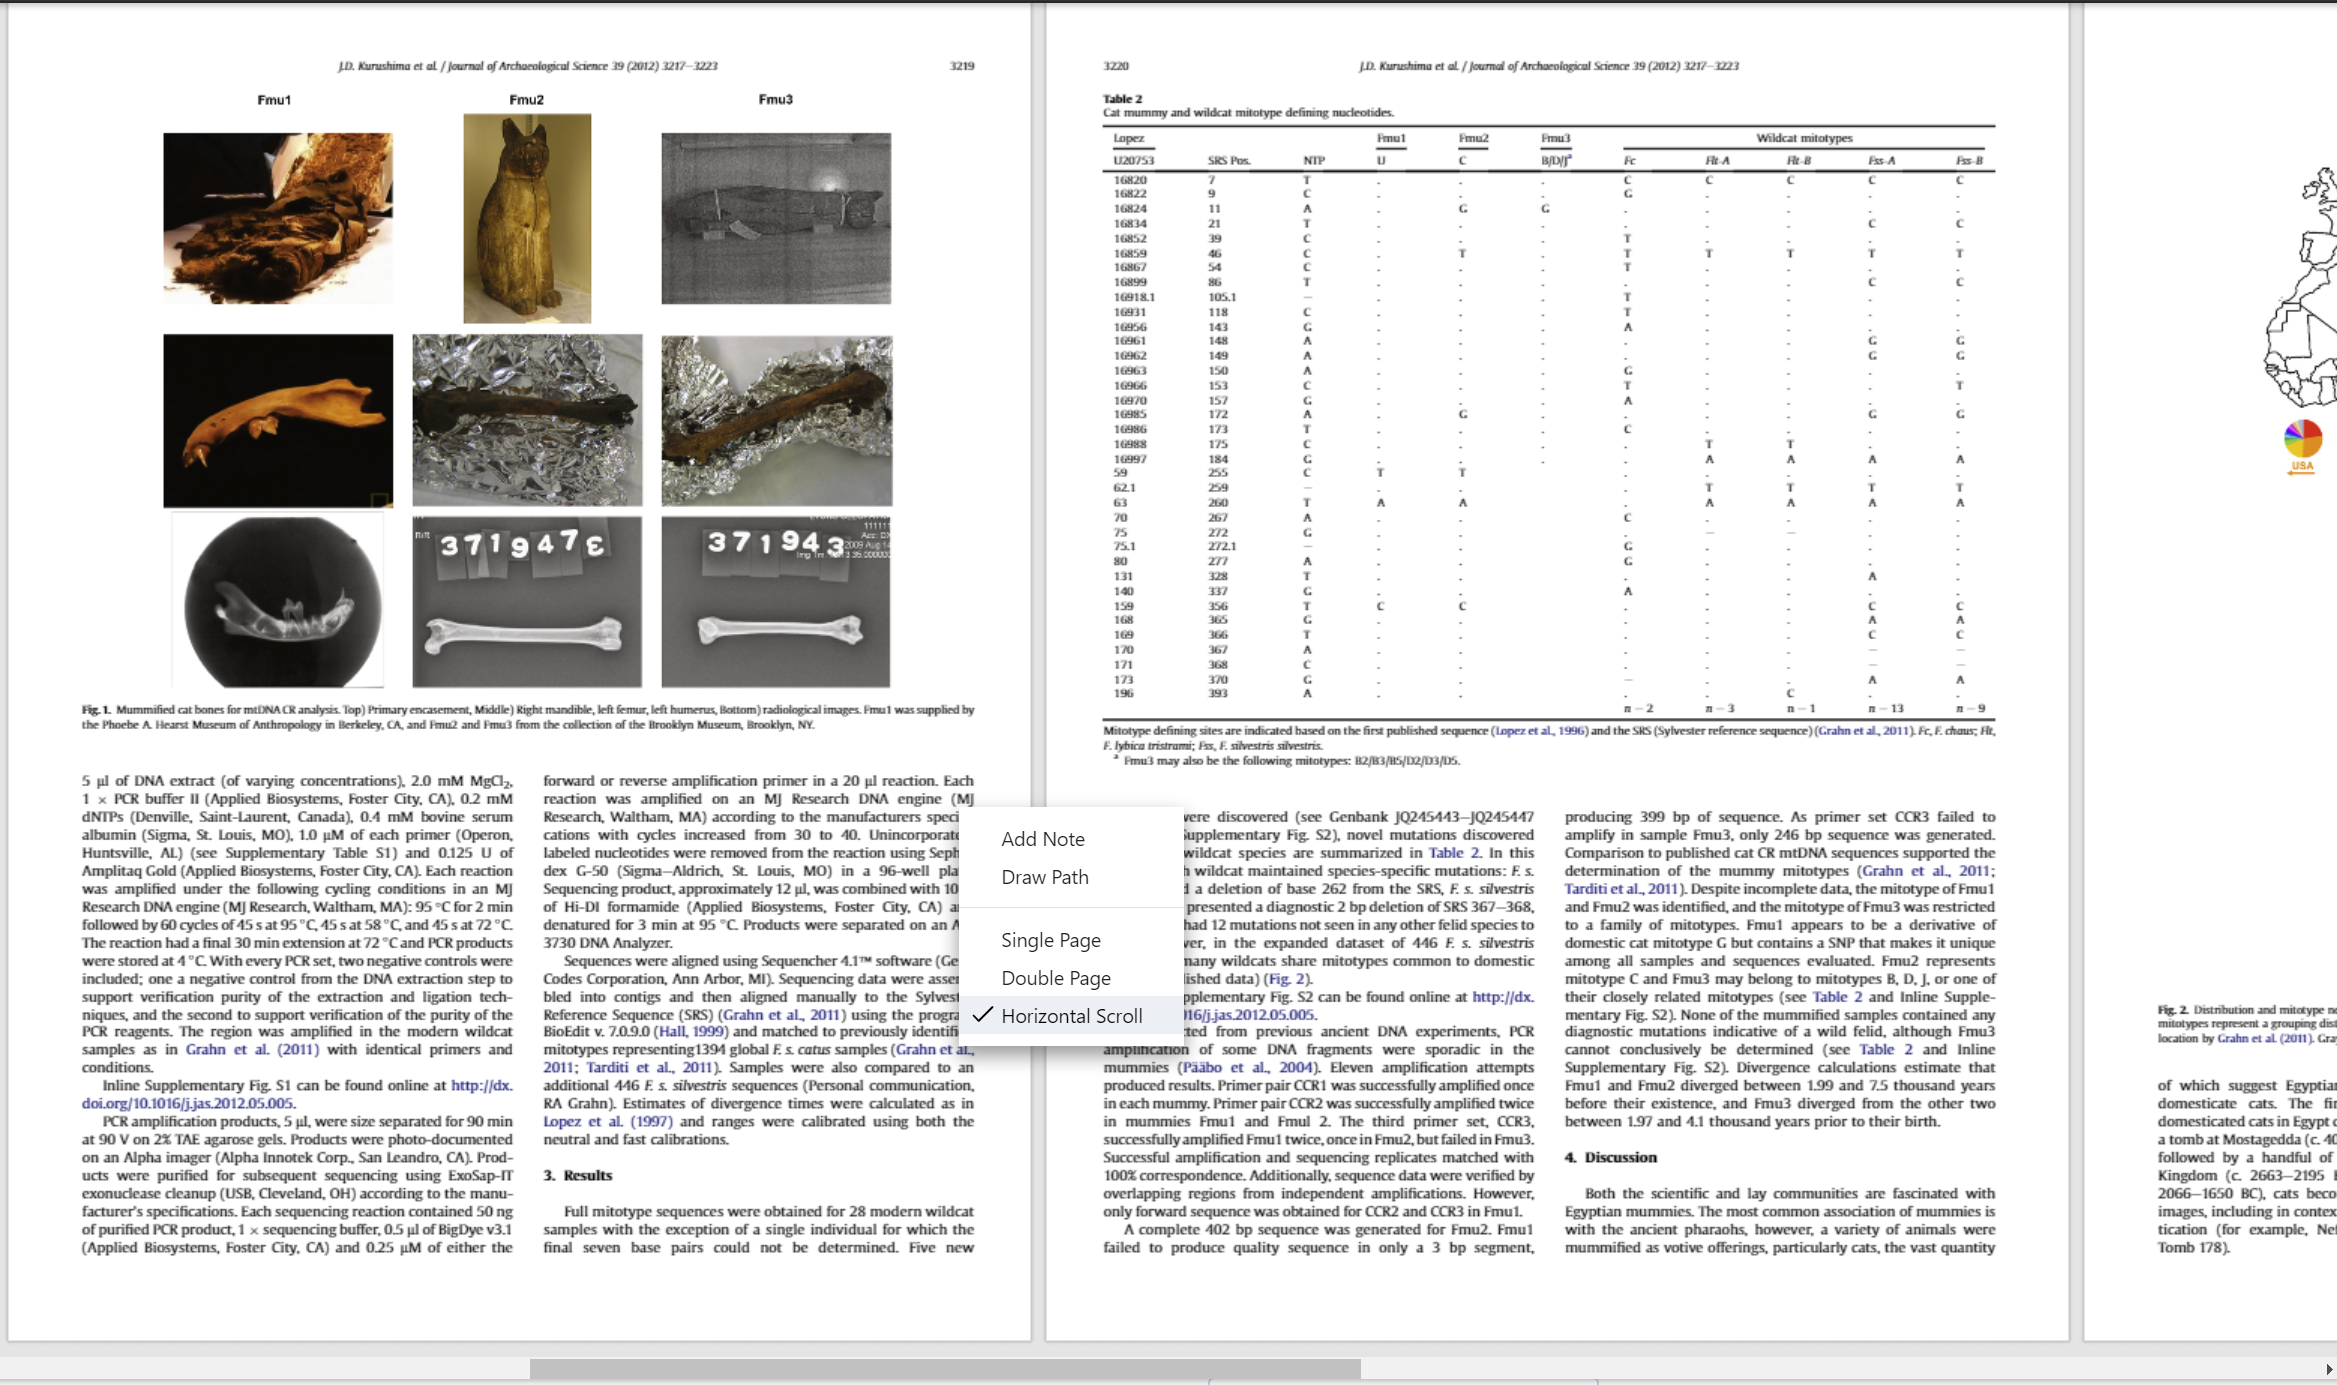 Horizontal scroll in ReadCube Papers Enhanced PDF